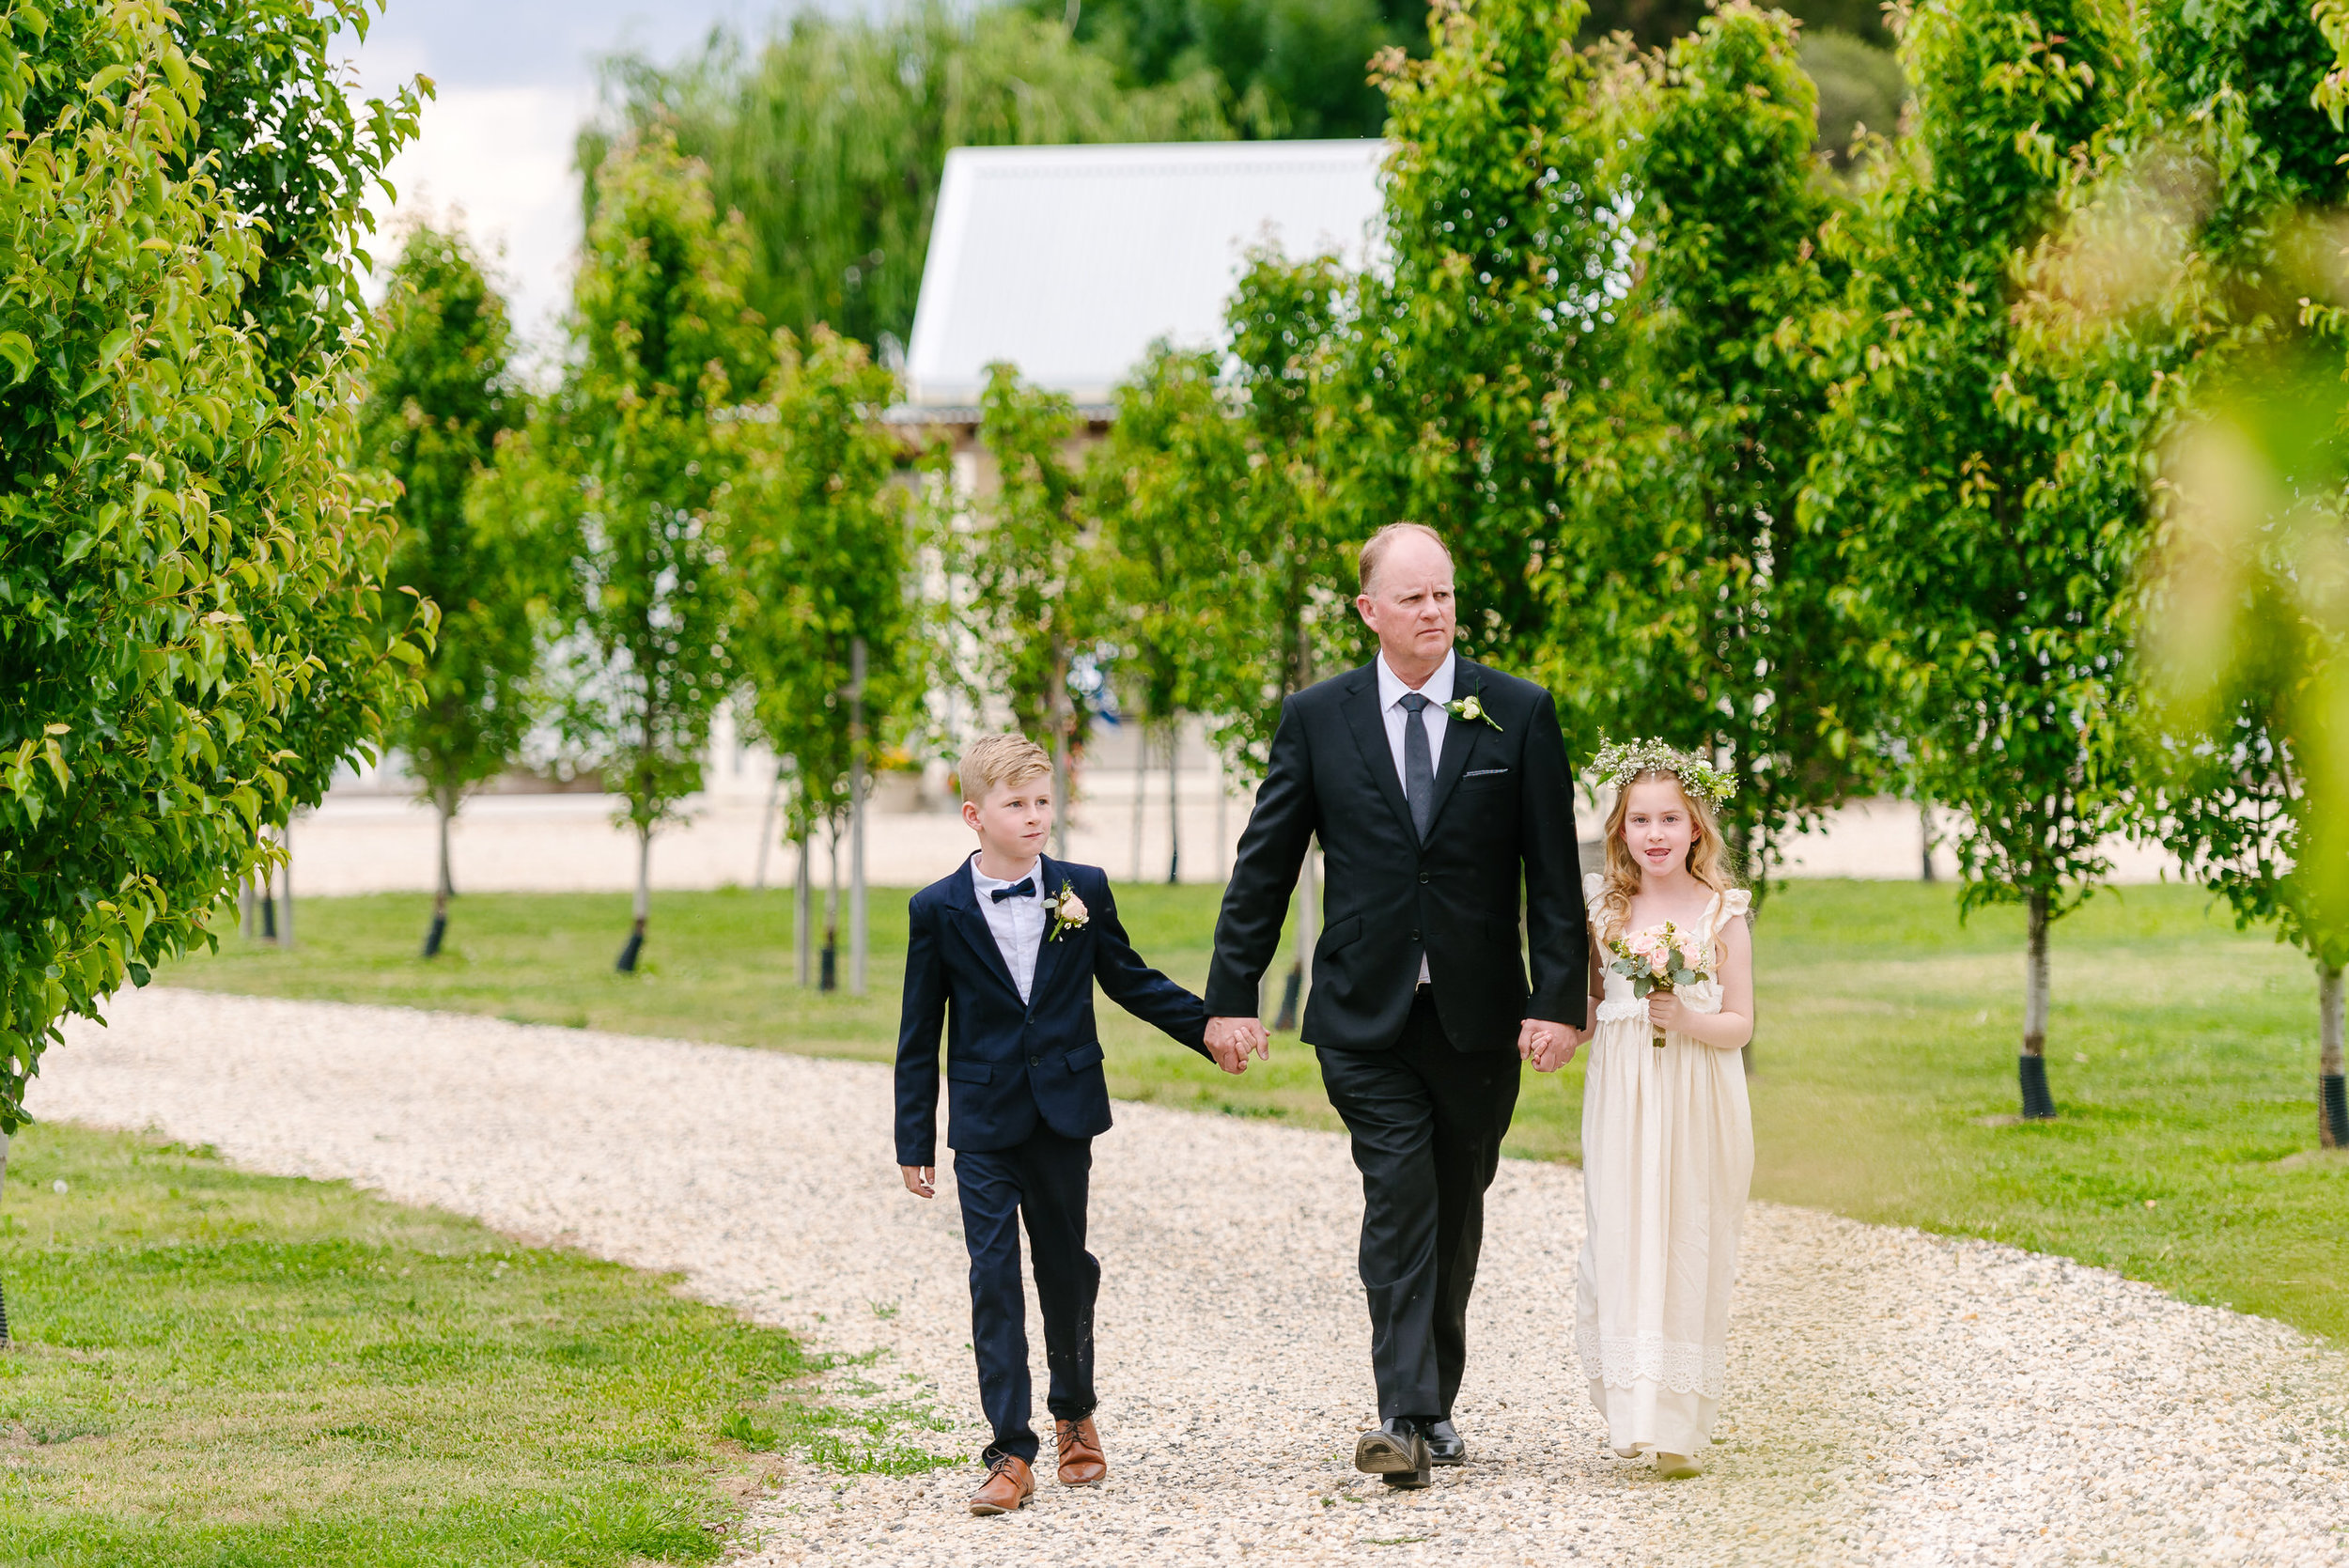 Justin_And_Jim_Photography_Byrchendale_Barn_Wedding33.JPG